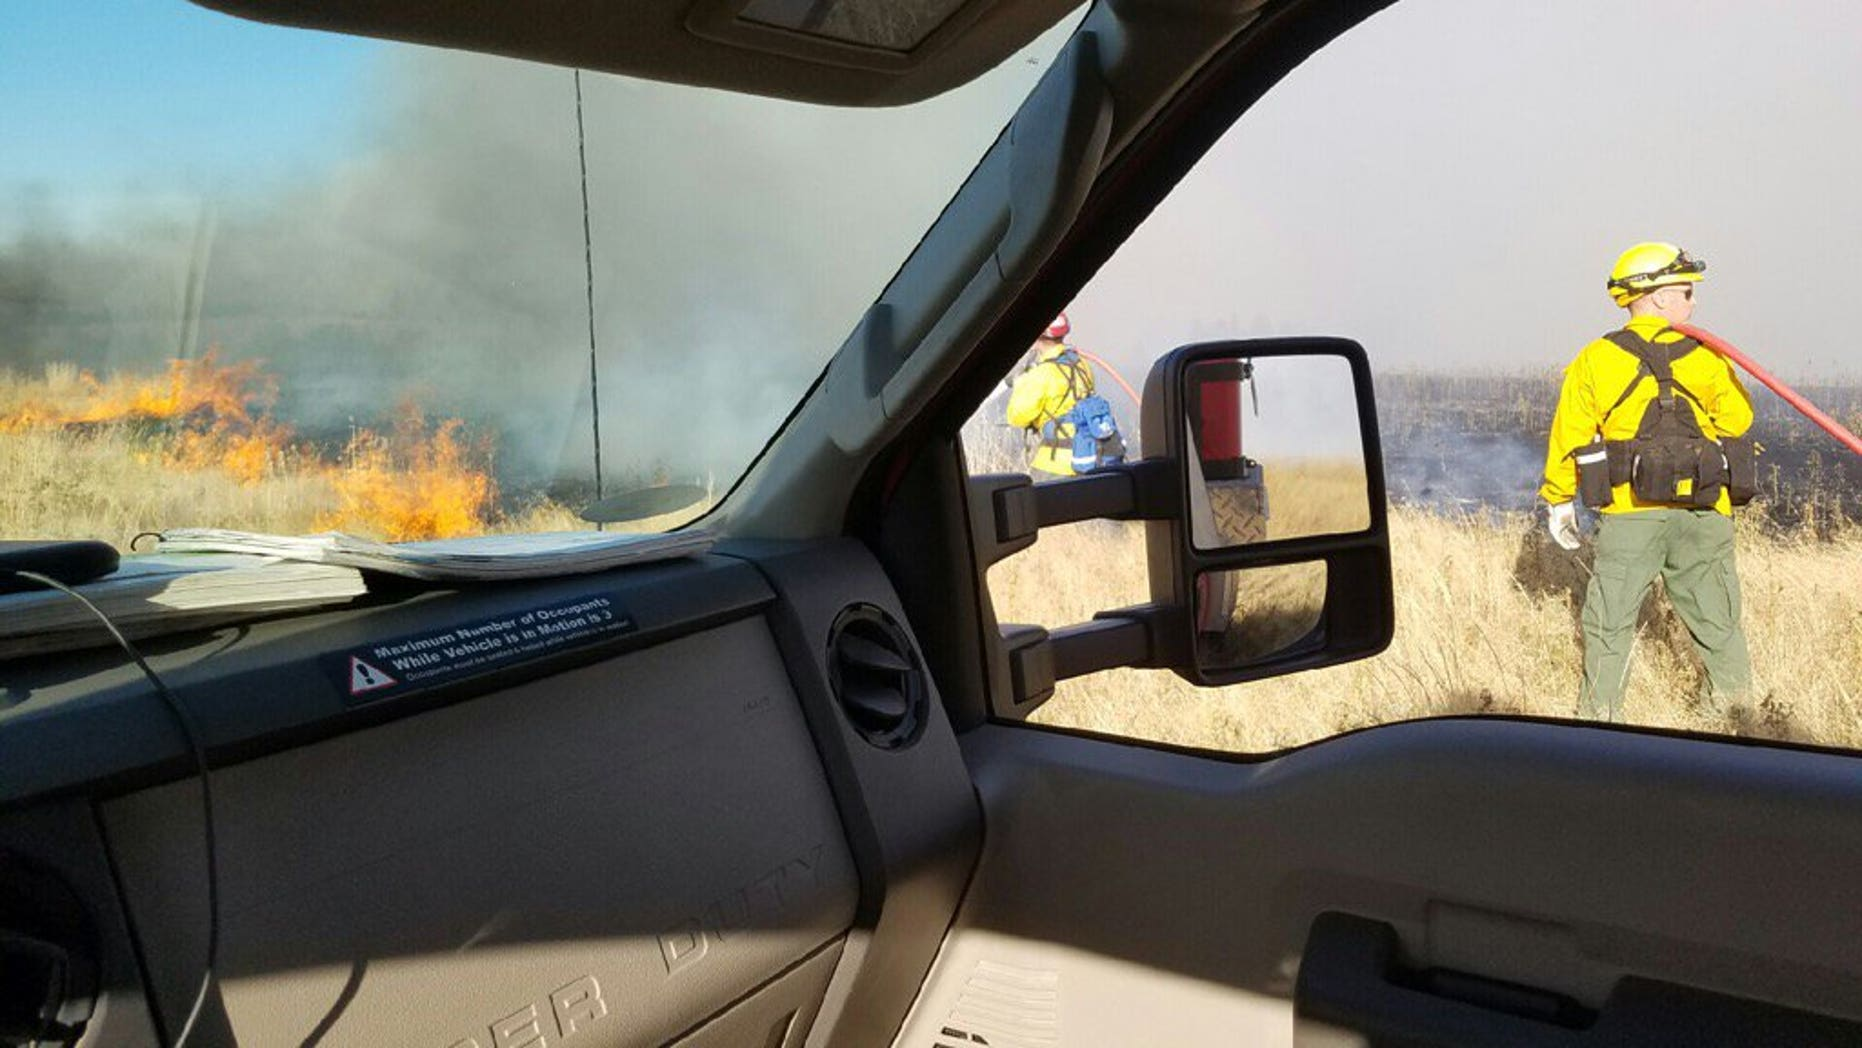 The Yale Road Fire in Washington state.